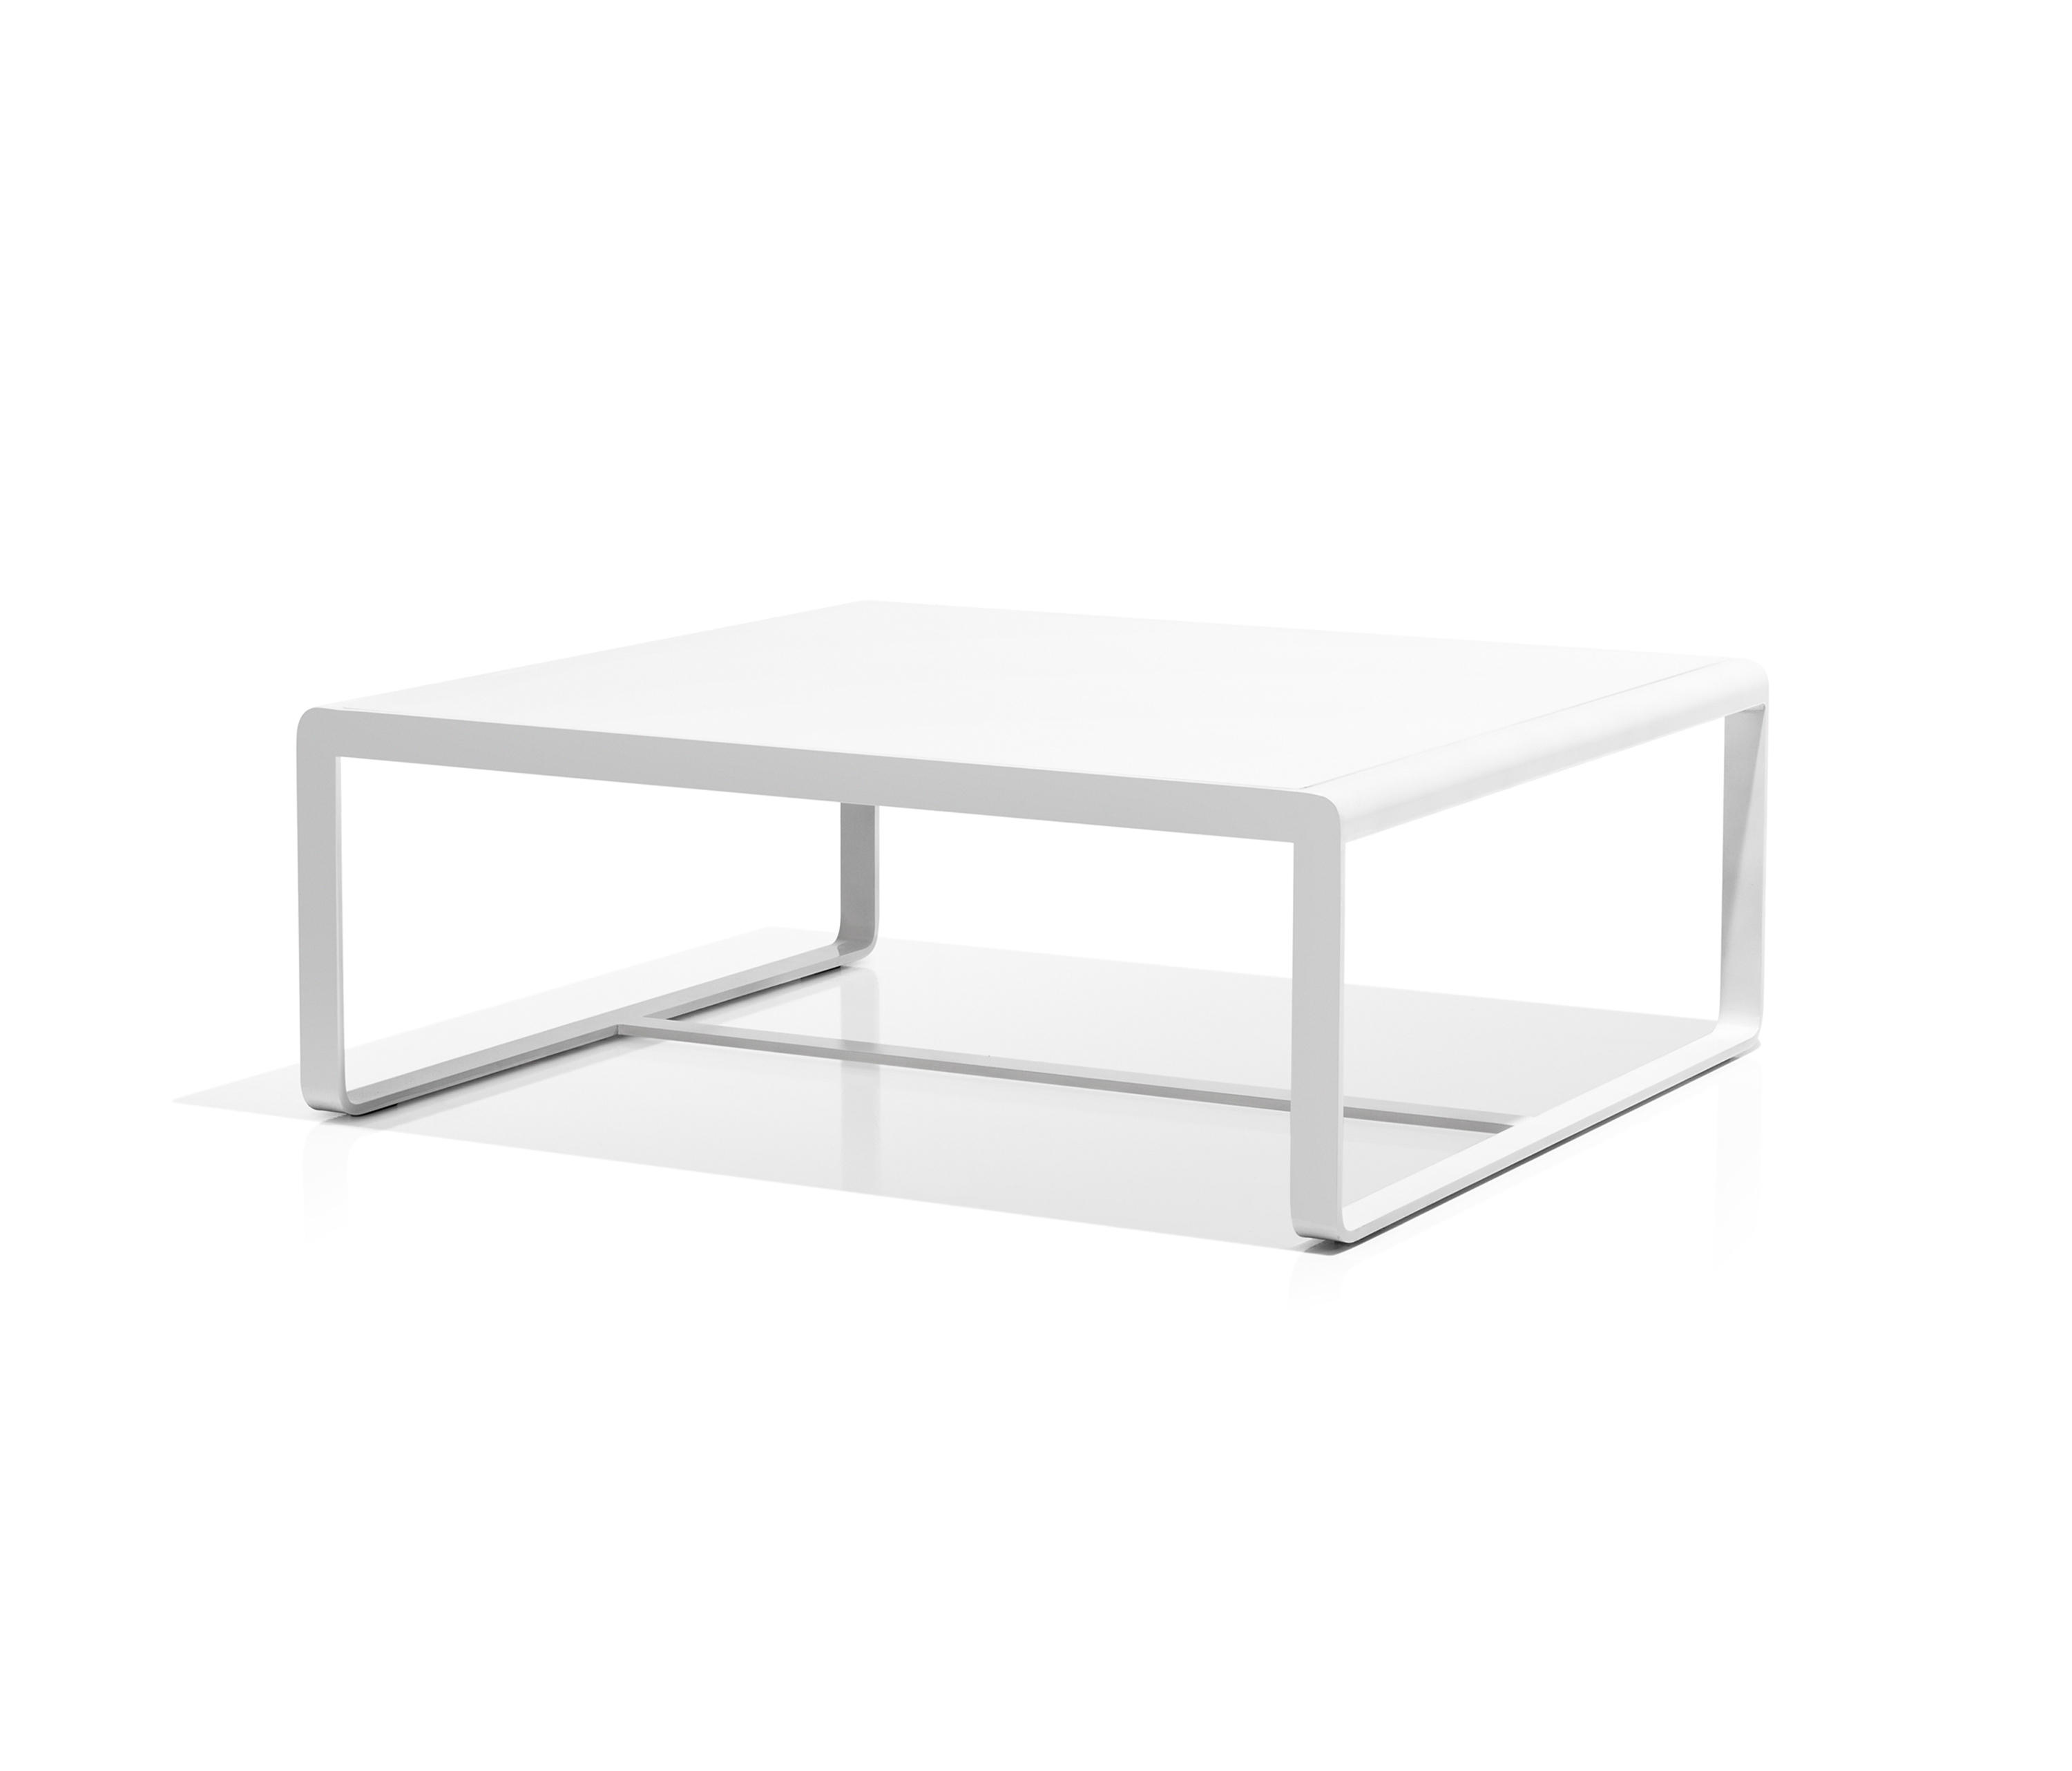 Sit Low Table White Coffee Tables From Bivaq Architonic